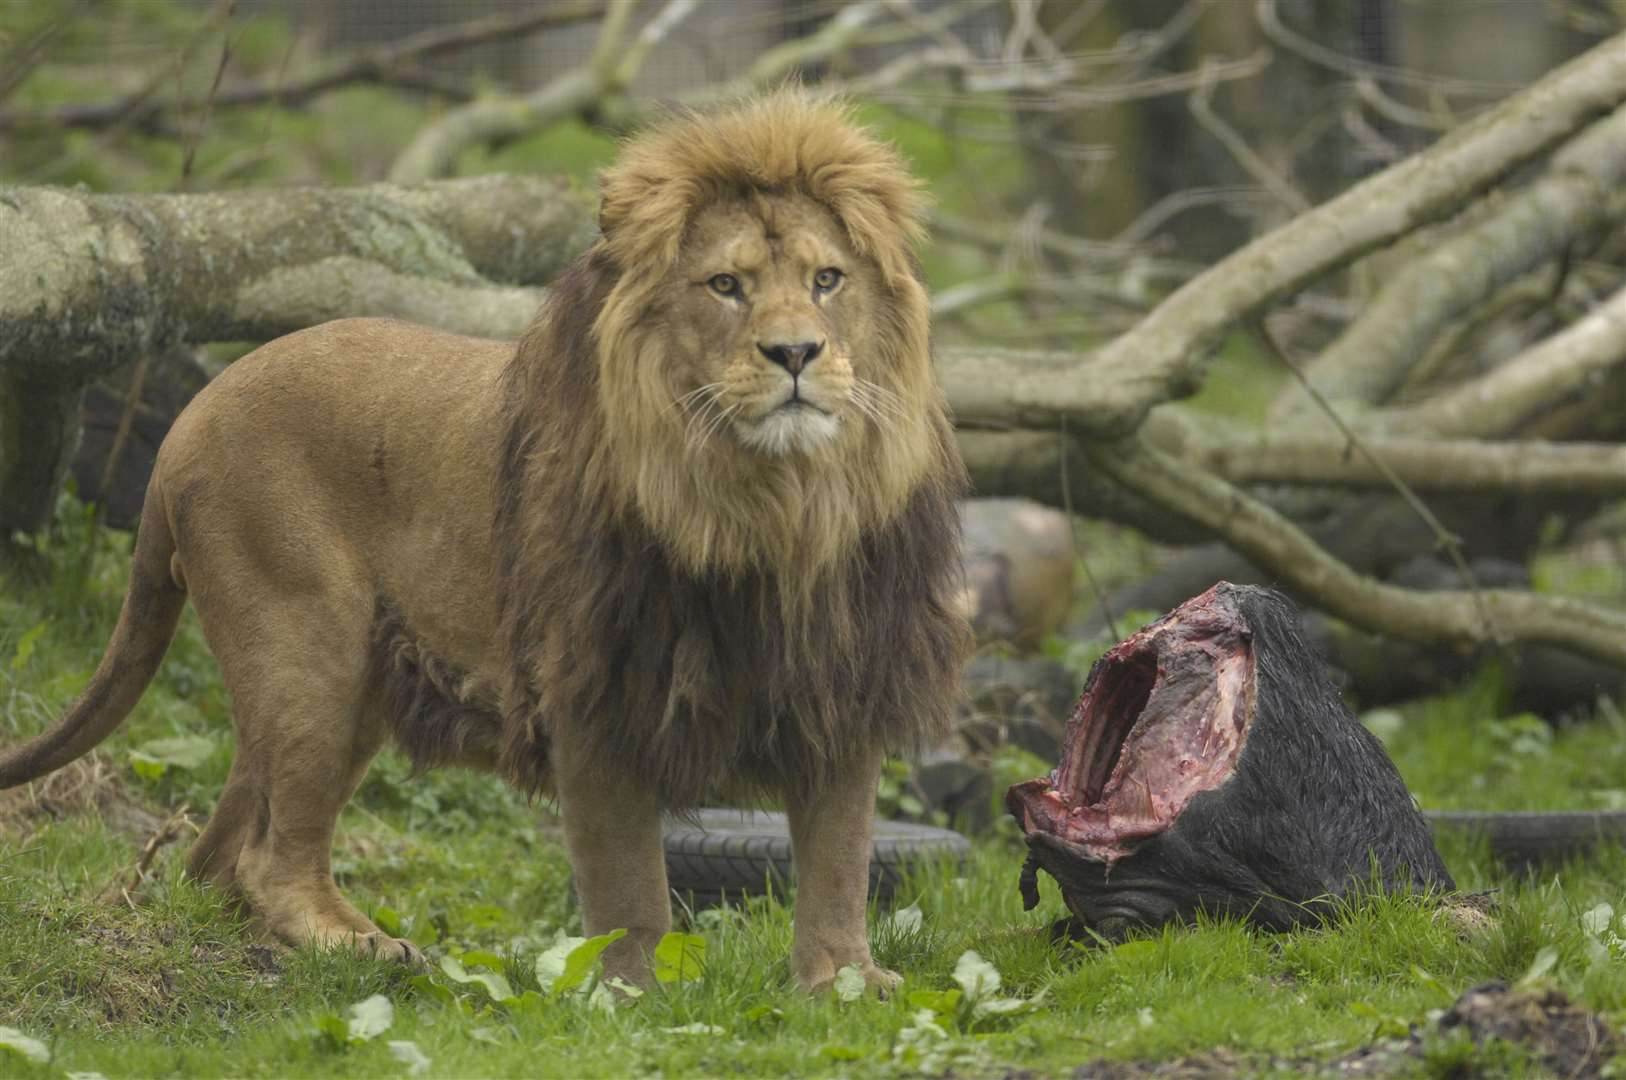 Barbary Lion may not get to see France